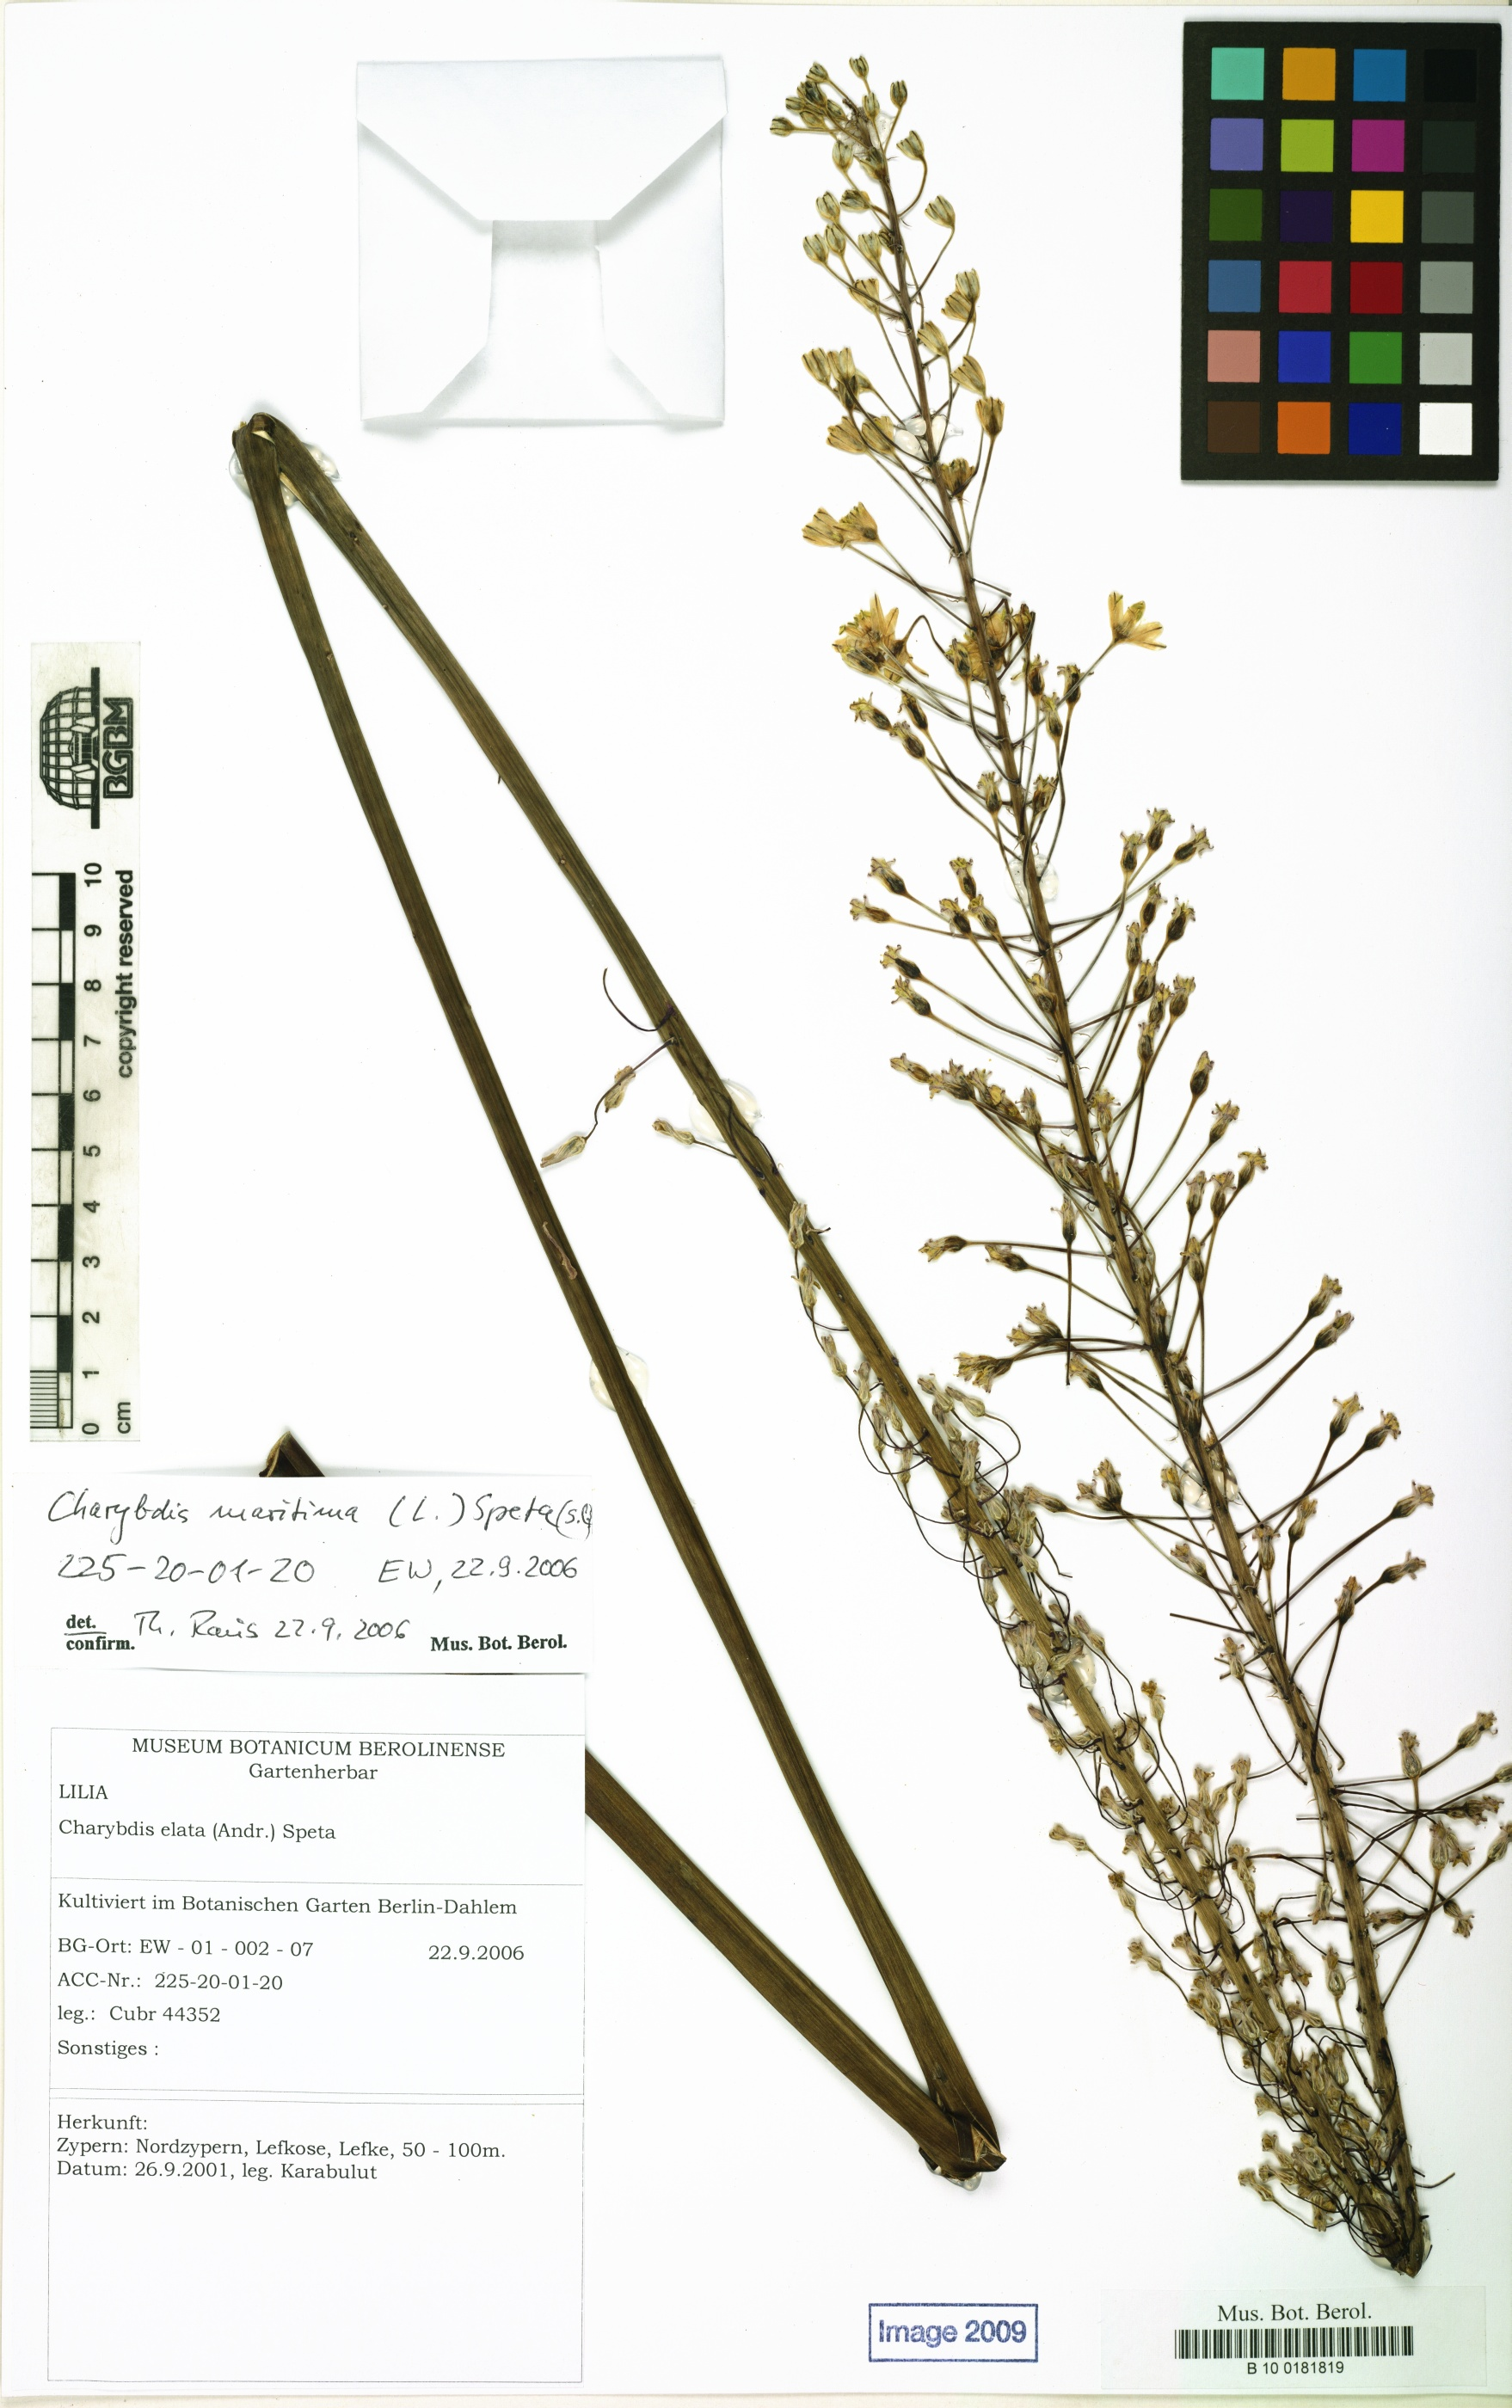 Botanic Garden and Botanical Museum Berlin-Dahlem, Freie Universität Berlin<br>by Röpert, D. (Ed.) 2000- (continuously updated): Digital specimen images at the Herbarium Berolinense. - Published on the Internet http://ww2.bgbm.org/herbarium/ (Barcode: B 10 0181819 / ImageId: 311106) [accessed 26-Nov-11].